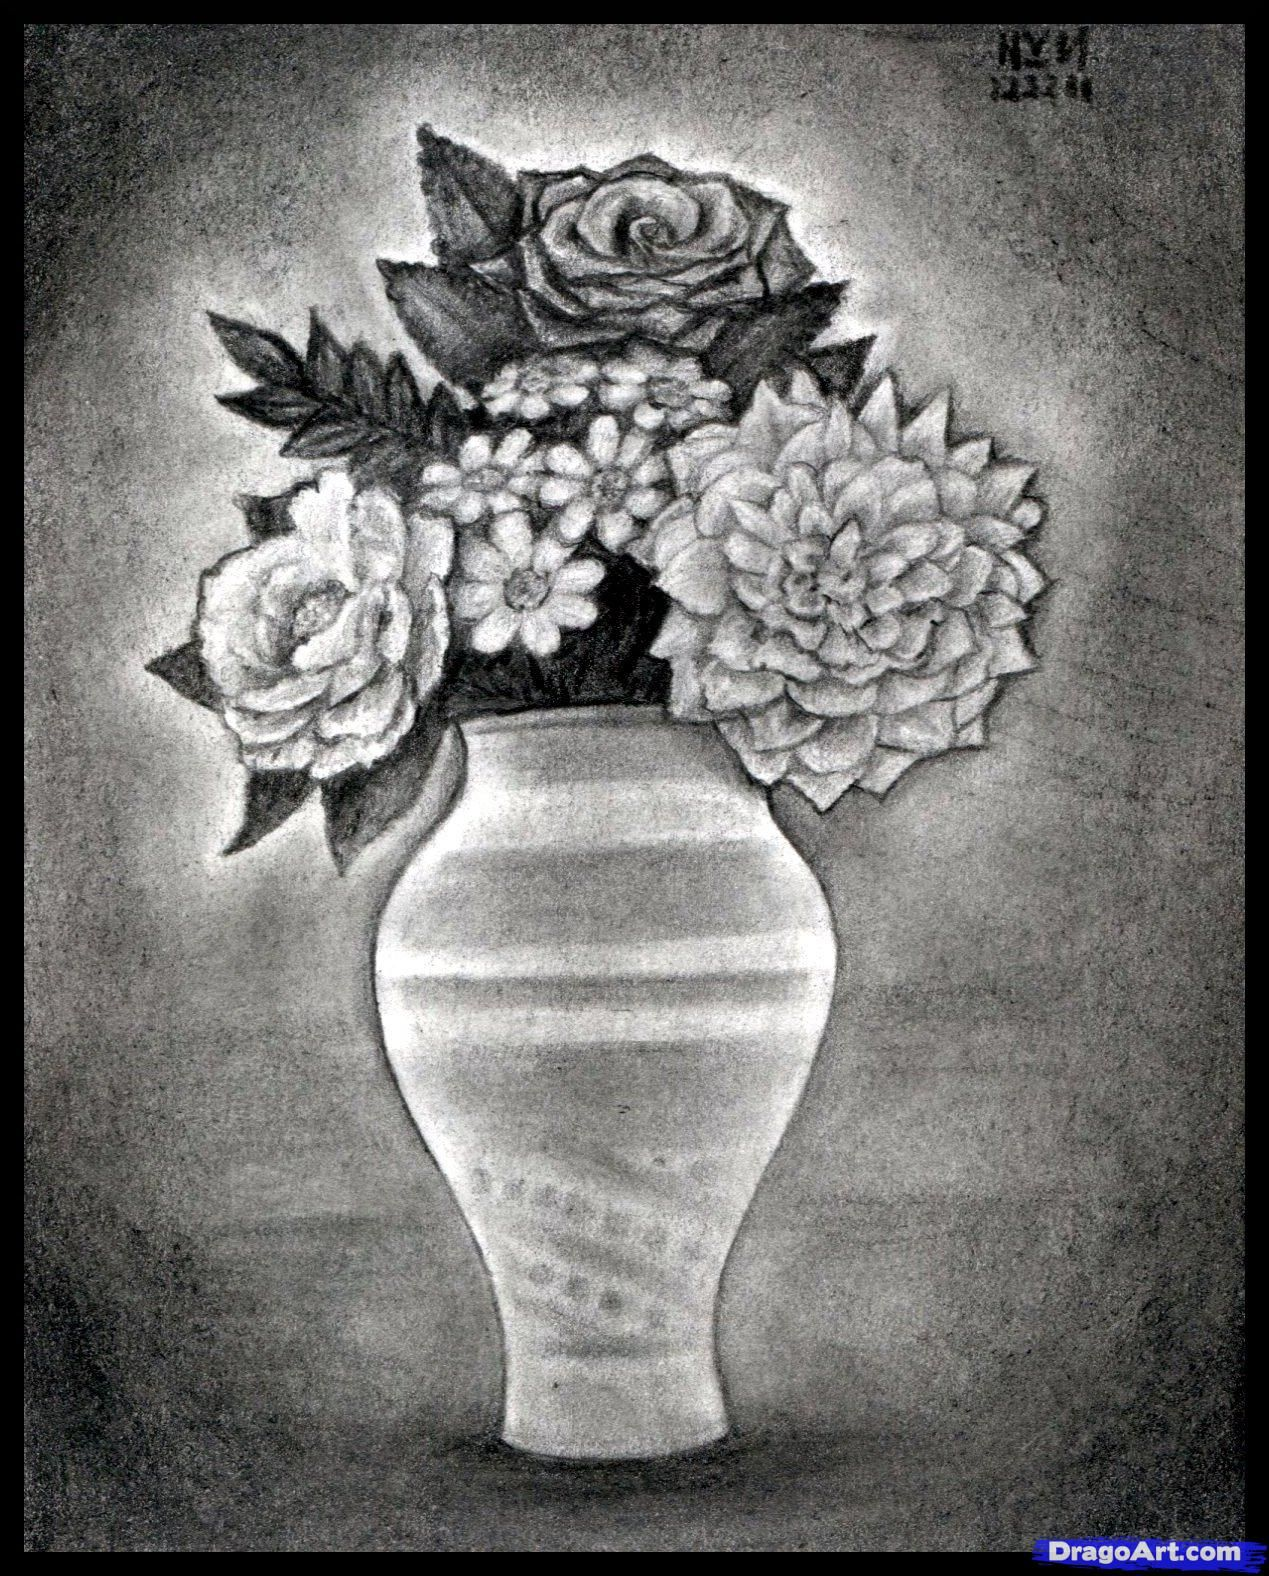 How To Draw Realistic Flowers Step By Step Realistic Drawing Technique Free Online Drawing Tutorial Adde Realistic Drawings Pencil Drawings Flower Drawing